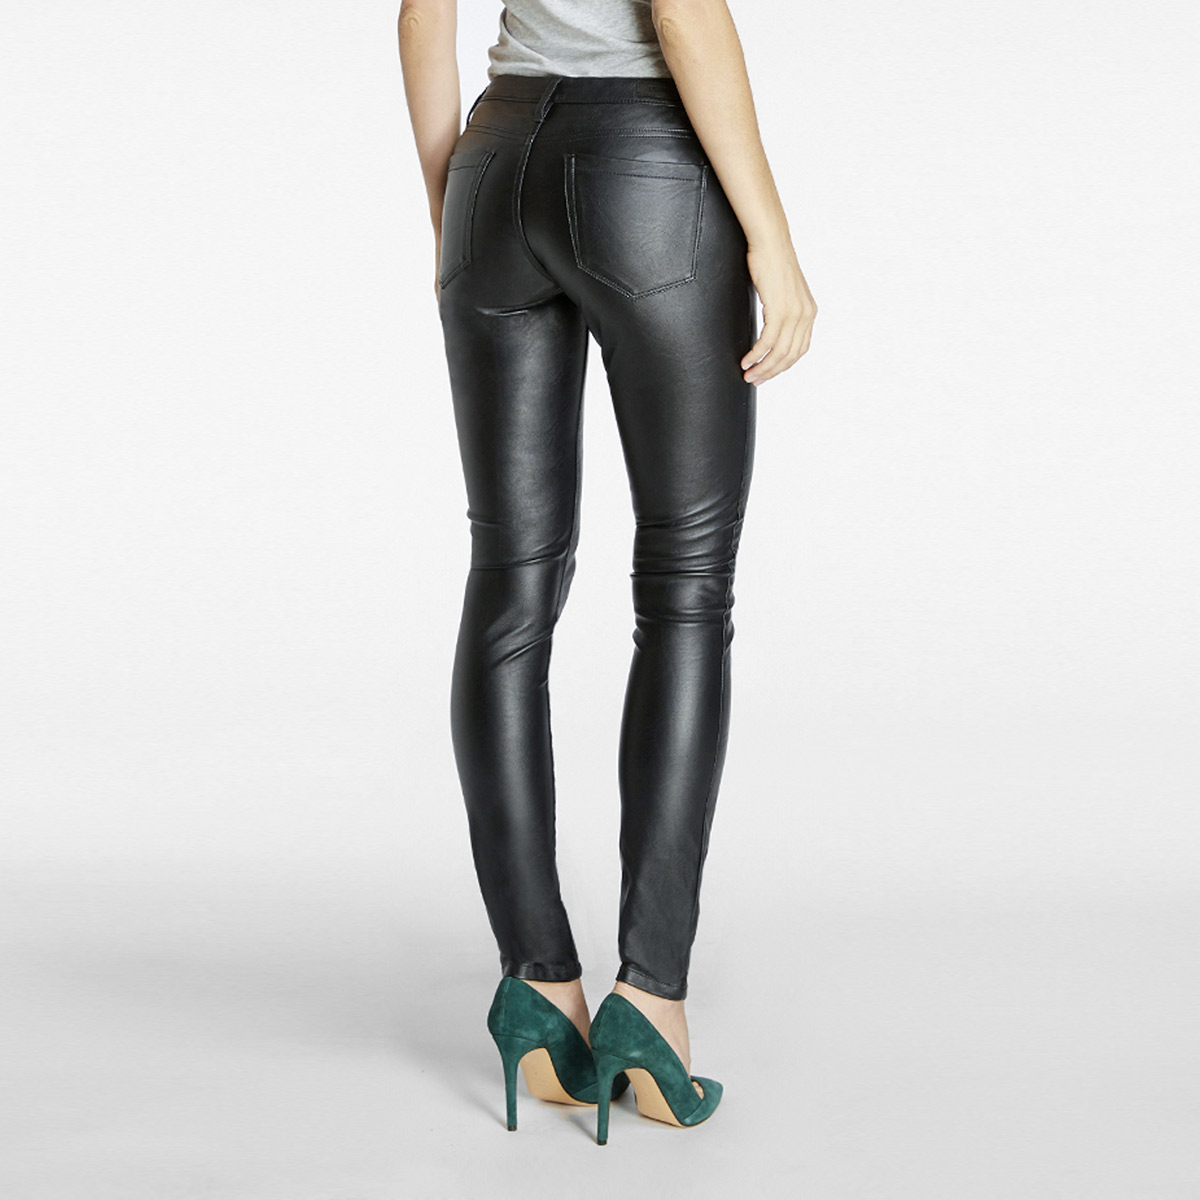 90c1dbea87e77 BlankNYC Faux Leather Skinny Pant Womens Apparel at Vickerey